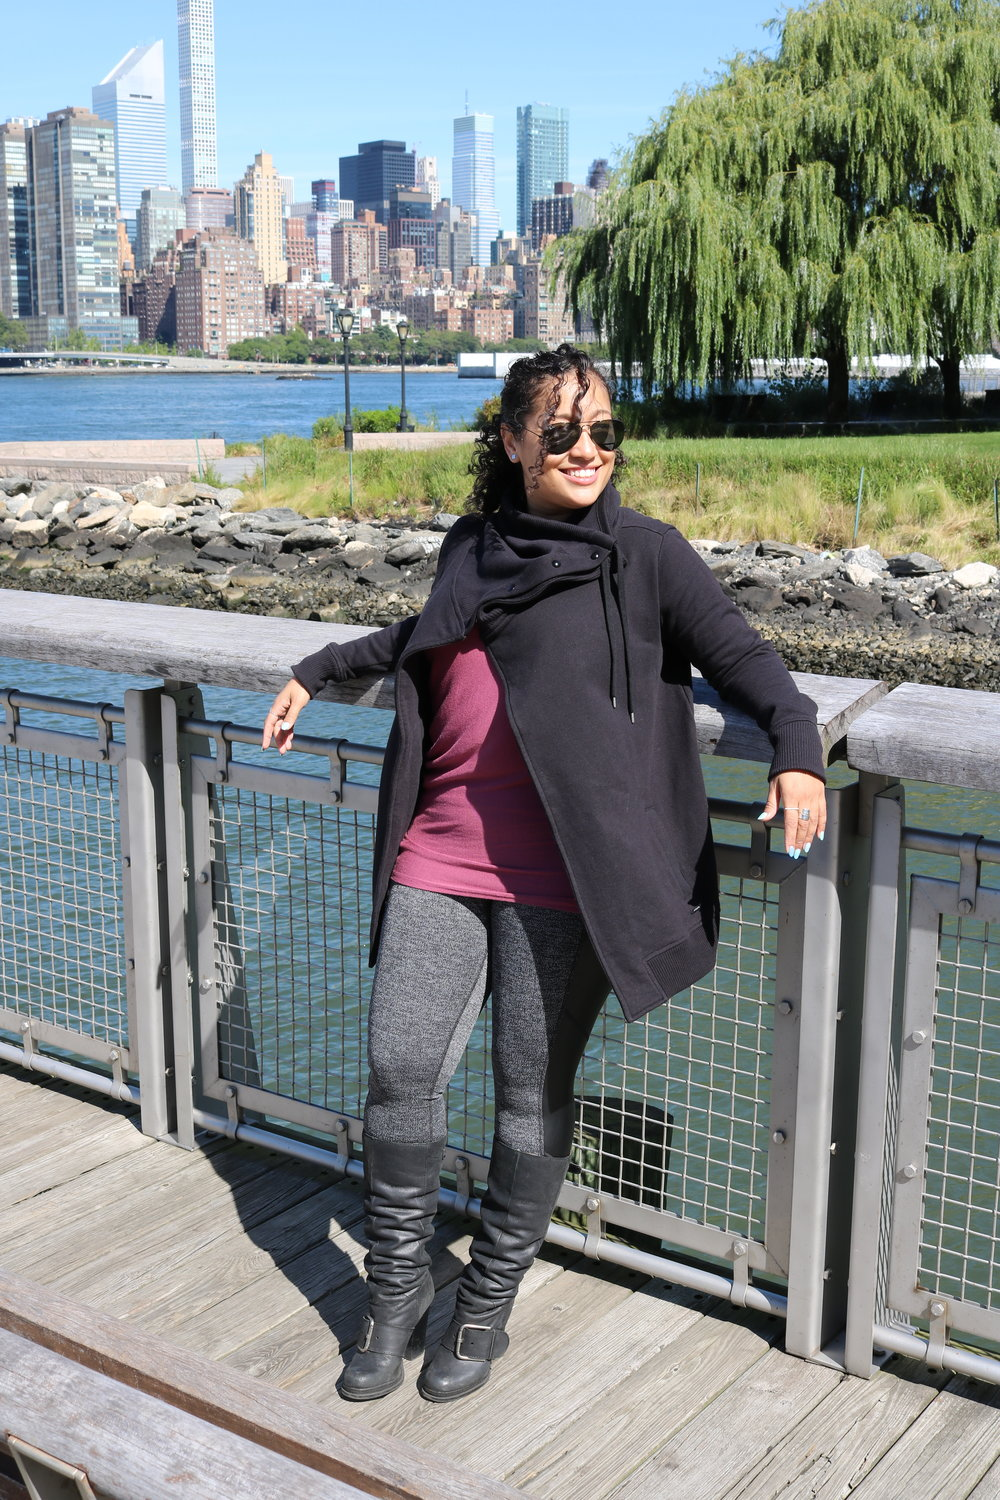 Check out Athleta Ambassador & Wukkout!® Founder, Krista Martins, rocking the latest Athleta line.  Get the look here:  Herringbone Luxe Metro Drifter Tight ,  Threadlight Asym Relaxed Tee ,  Wrapper's Delight Jacket .